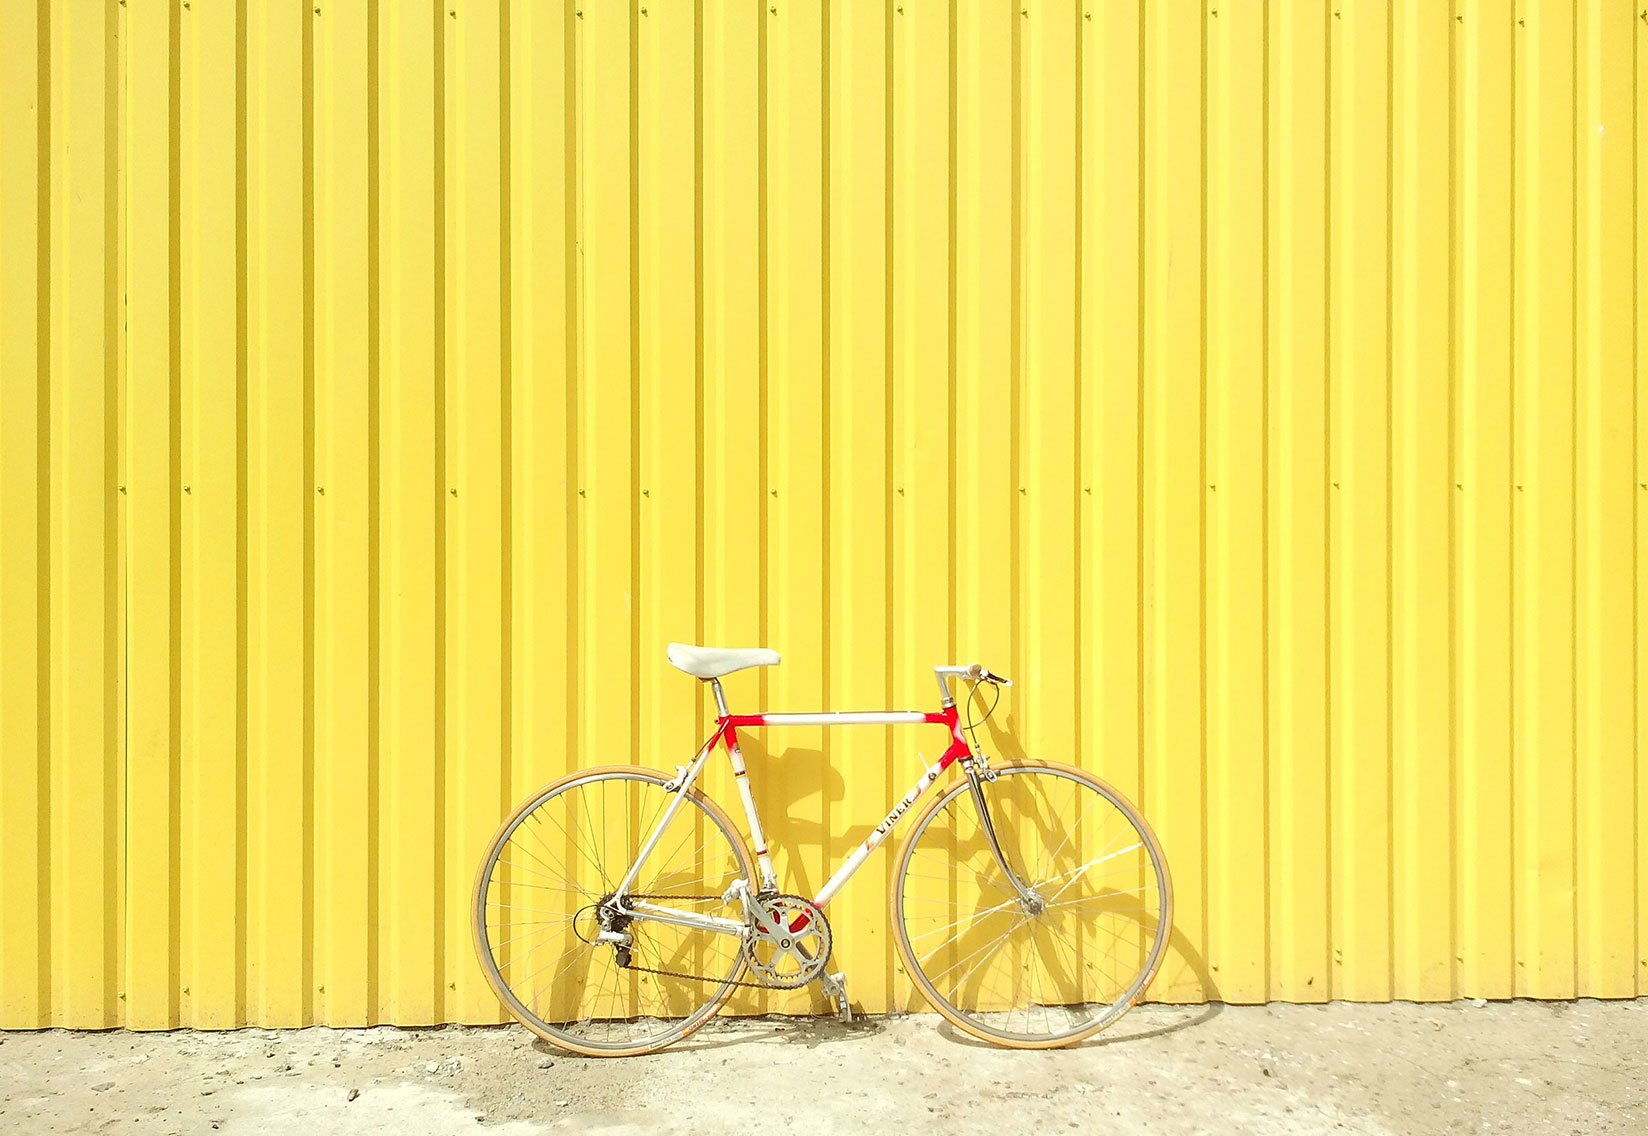 The effect of colors on perception. Part four: color yellow